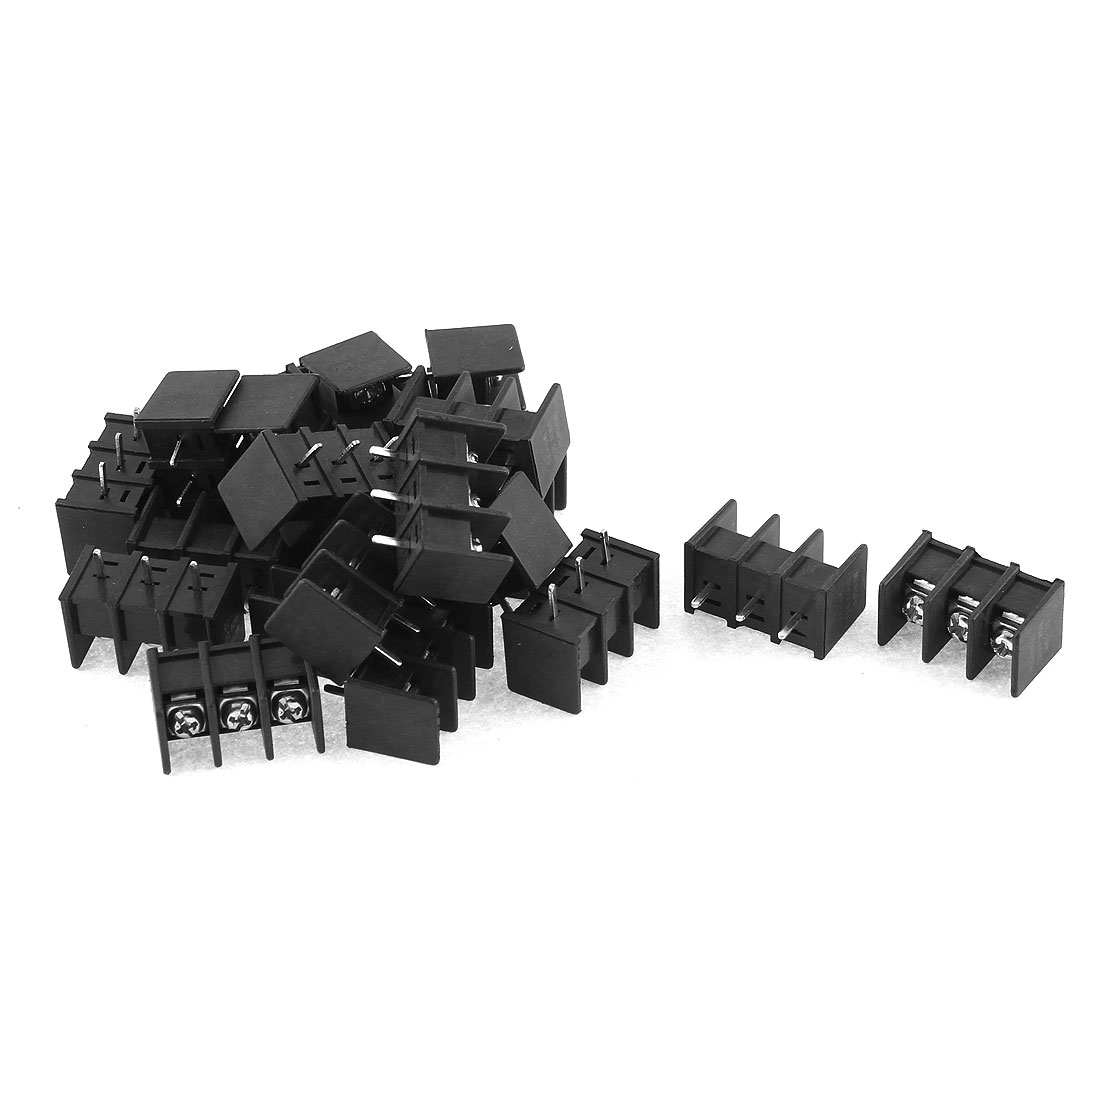 300V 20A 3 Position 6mm Pitch Screw Terminal Barrier Blocks Black 20pcs